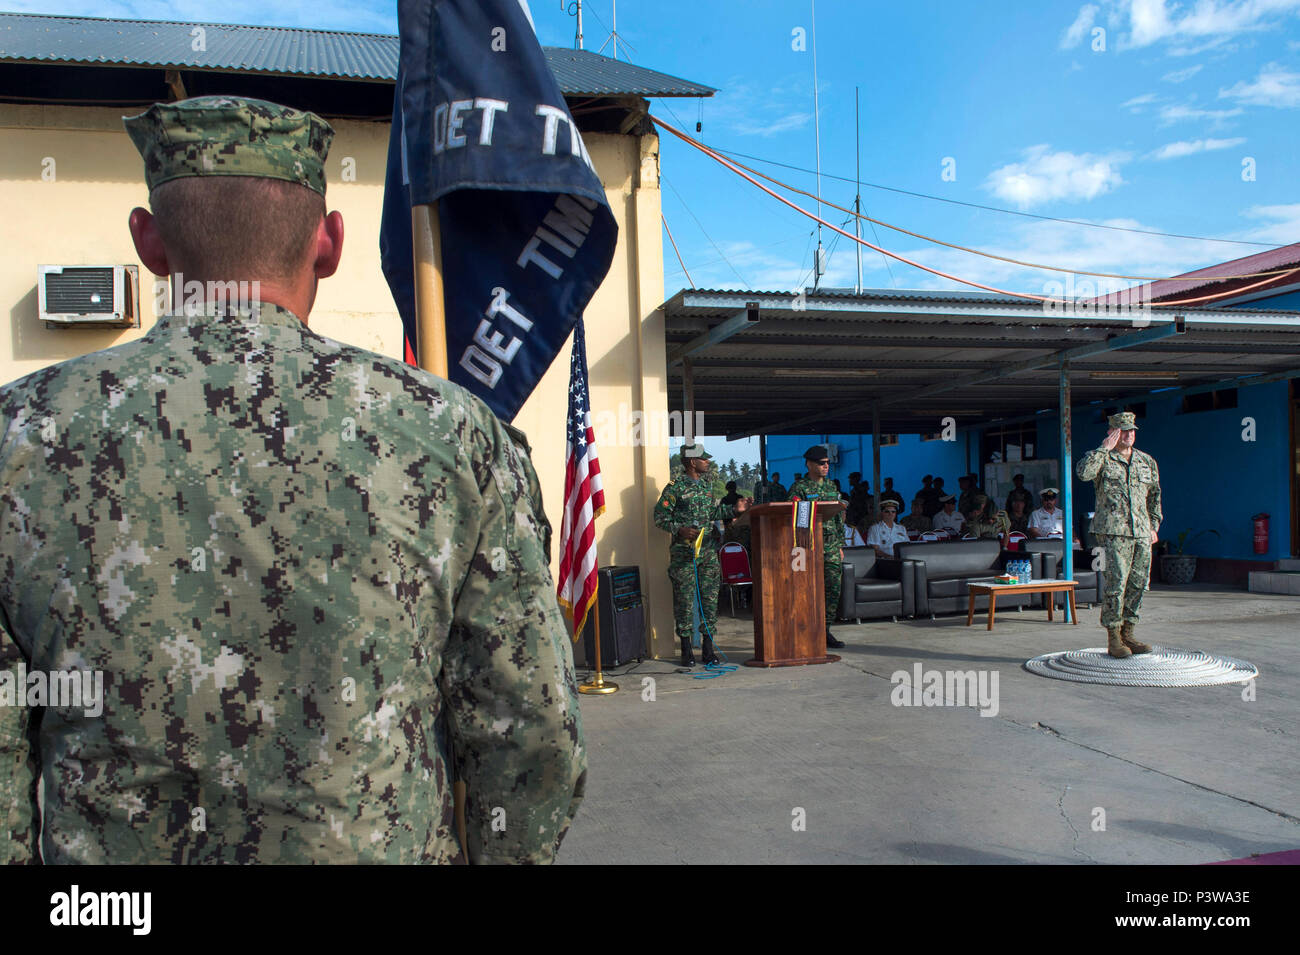 160801-N-DH124-020 DILI, Timor Leste (Aug. 1, 2016) - Capt. Jeffrey Killian, commodore, 30th Naval Construction Regiment, salutes U.S. Navy, U.S. Marine Corps and Forsa Defesa Timor Leste (F-FDTL) service members during the opening ceremony for Cooperation Afloat Readiness and Training (CARAT) Timor-Leste 2016 at the Port Hera Naval Base. The focus of CARAT is developing maritime security capabilities and increasing interoperability among participants. Skill areas exercised during CARAT include Maritime Interdiction Operations; riverine, amphibious and undersea warfare operations; diving and s Stock Photo